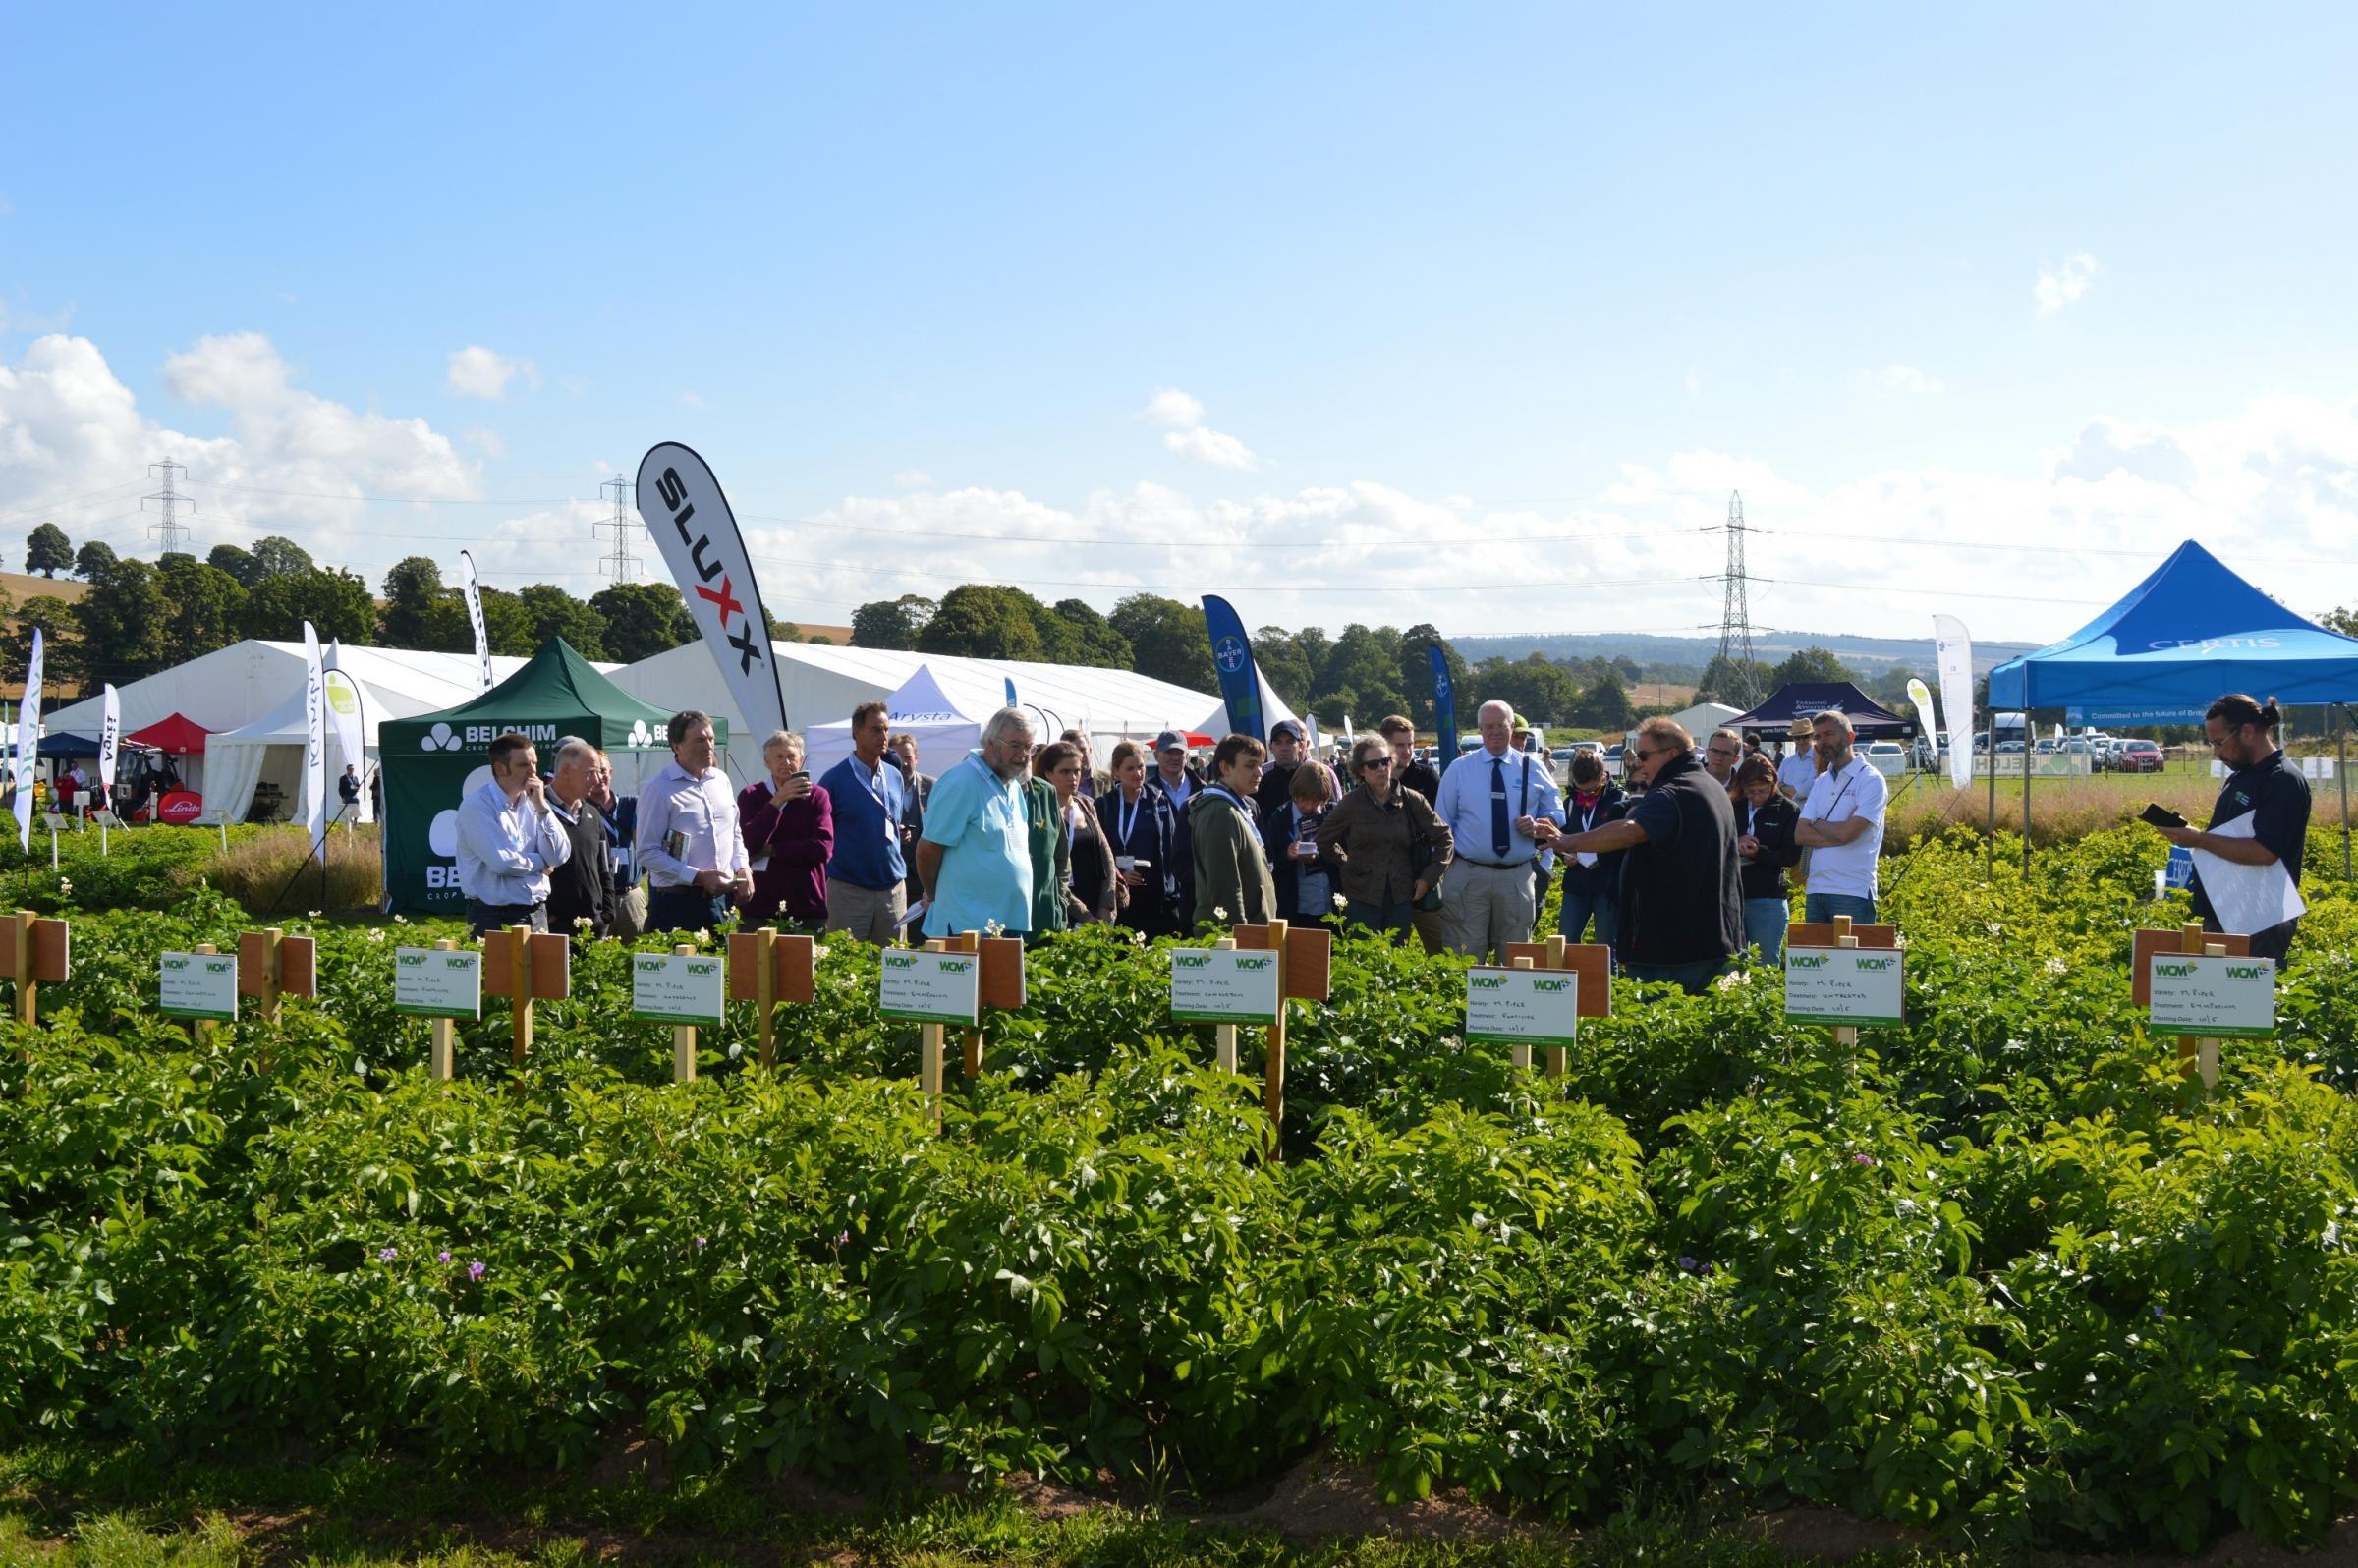 A good day to view the demo plots at Potatoes in Practice, recently